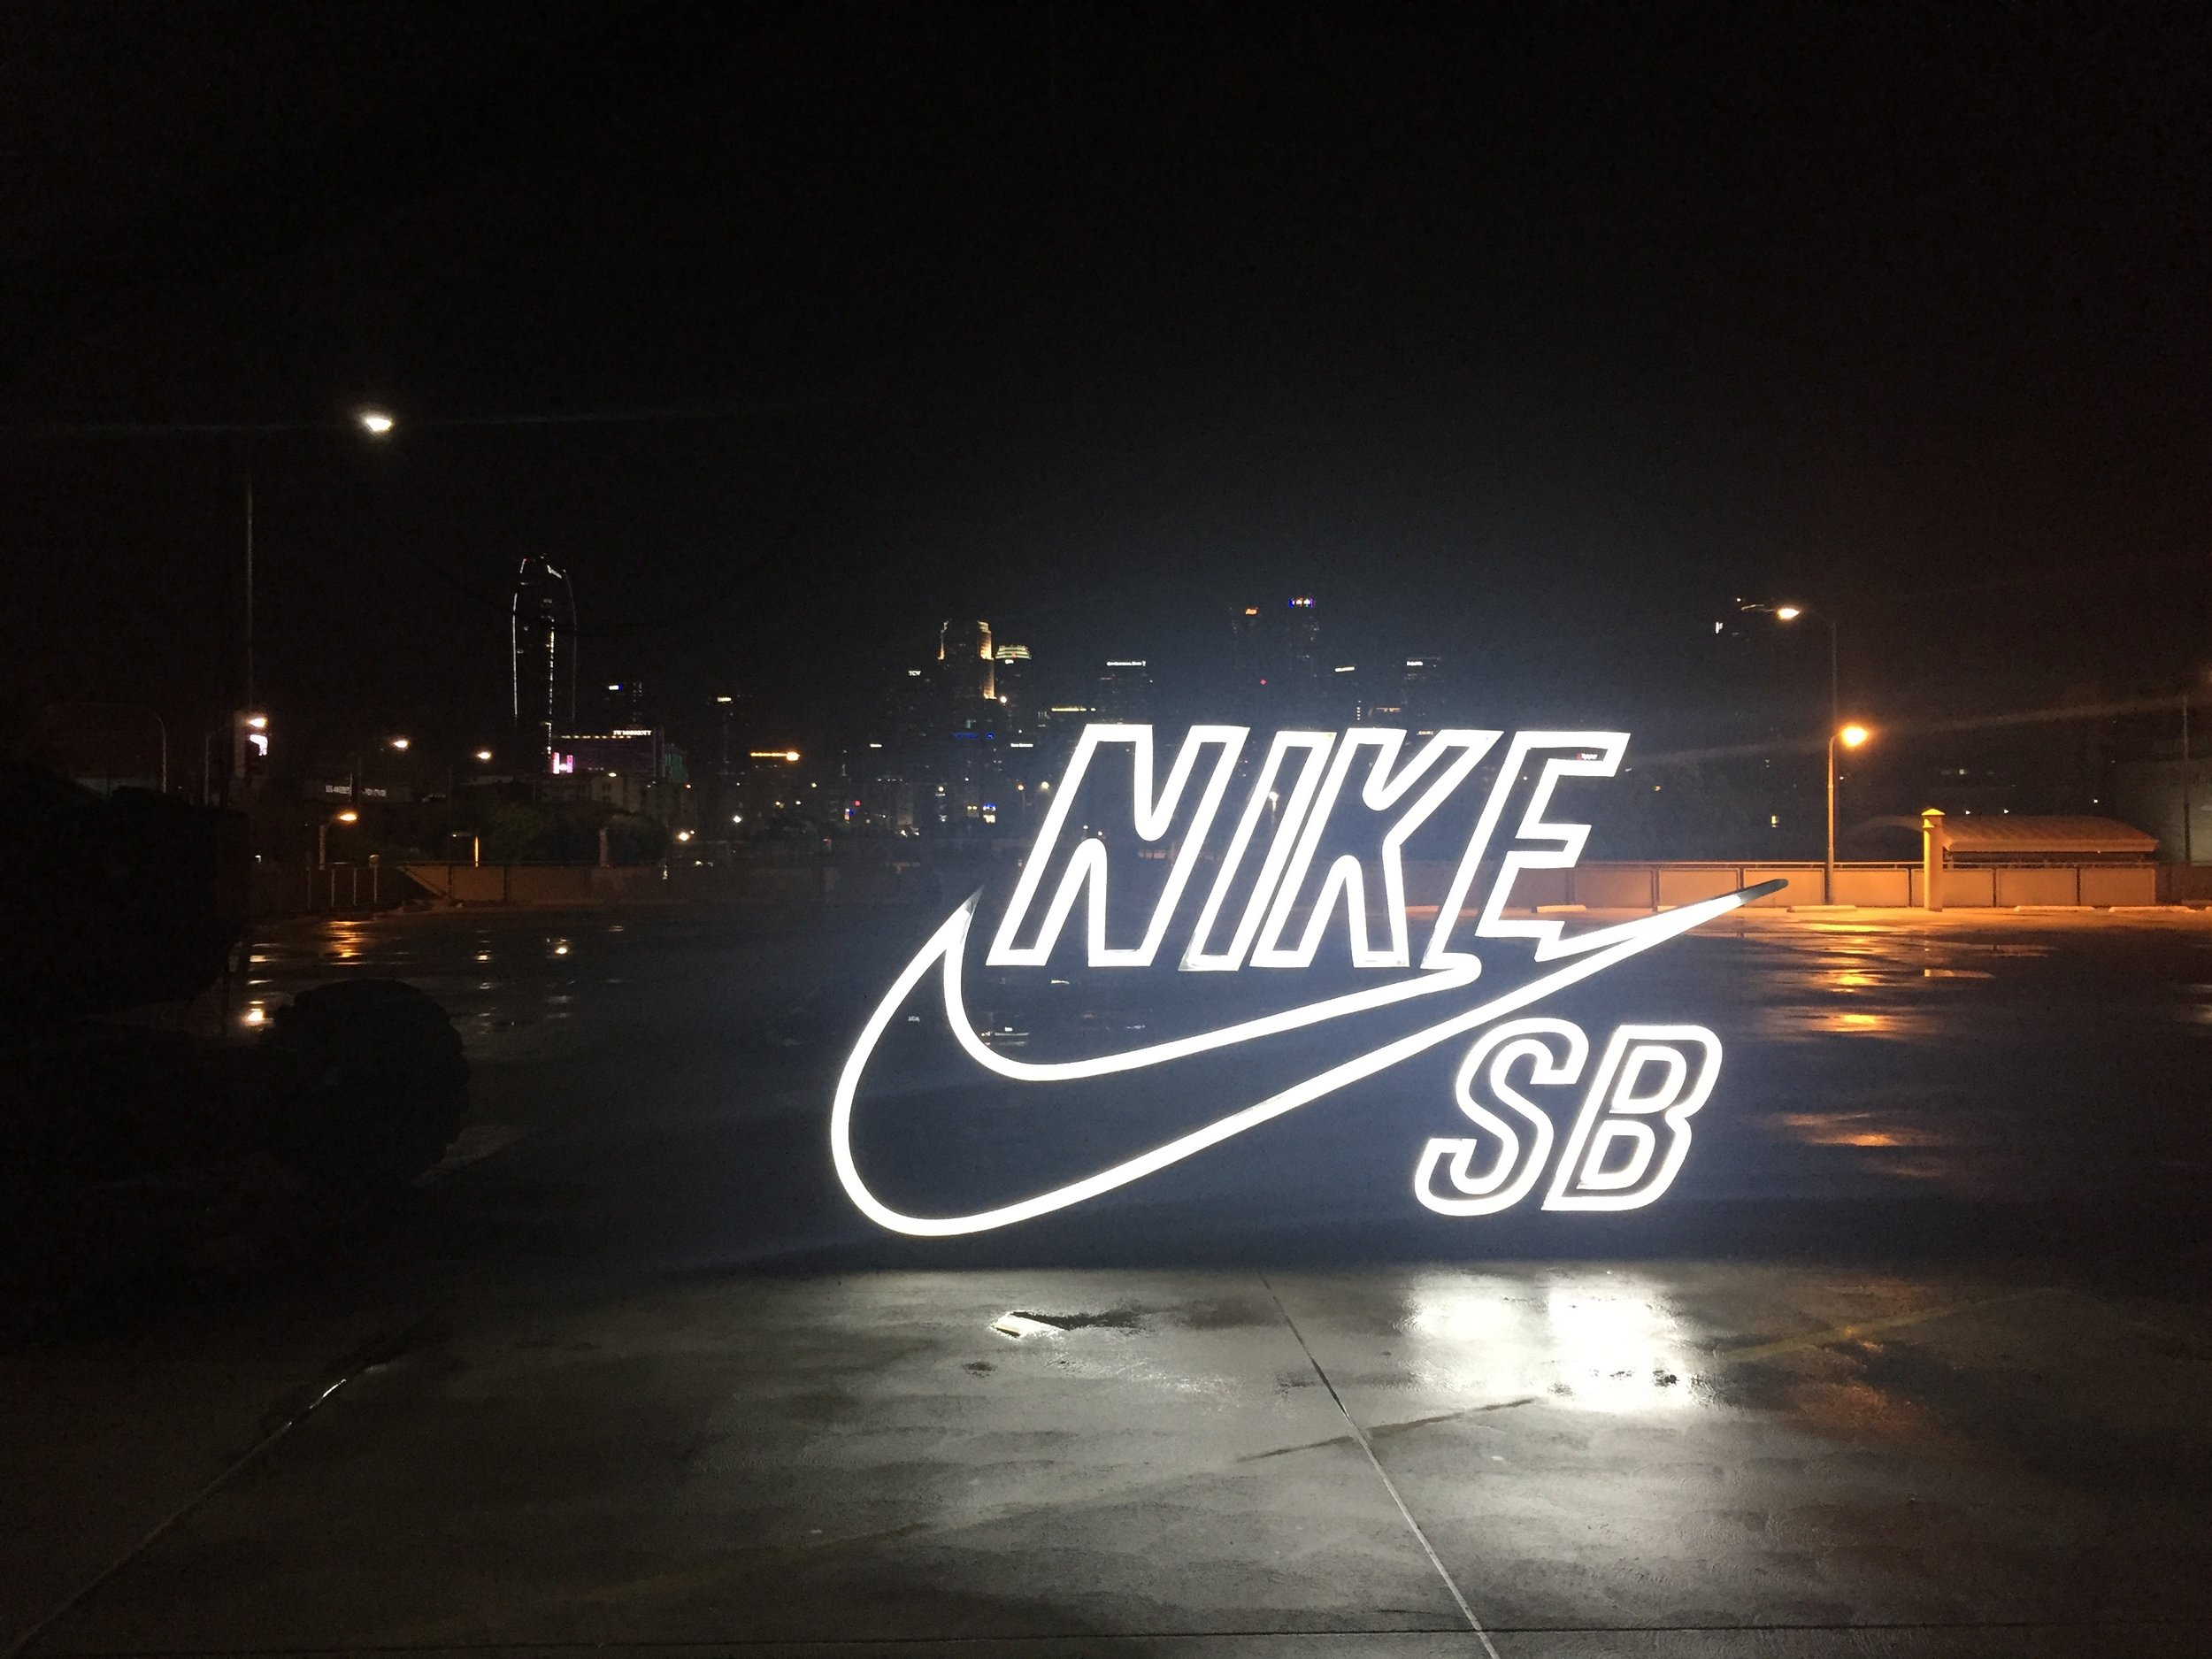 The big Nike SB signs seen in the spot are custom neon w/ channeled metal framing that were hung from cranes / condors and shot in-camera. The main one is 12' wide.